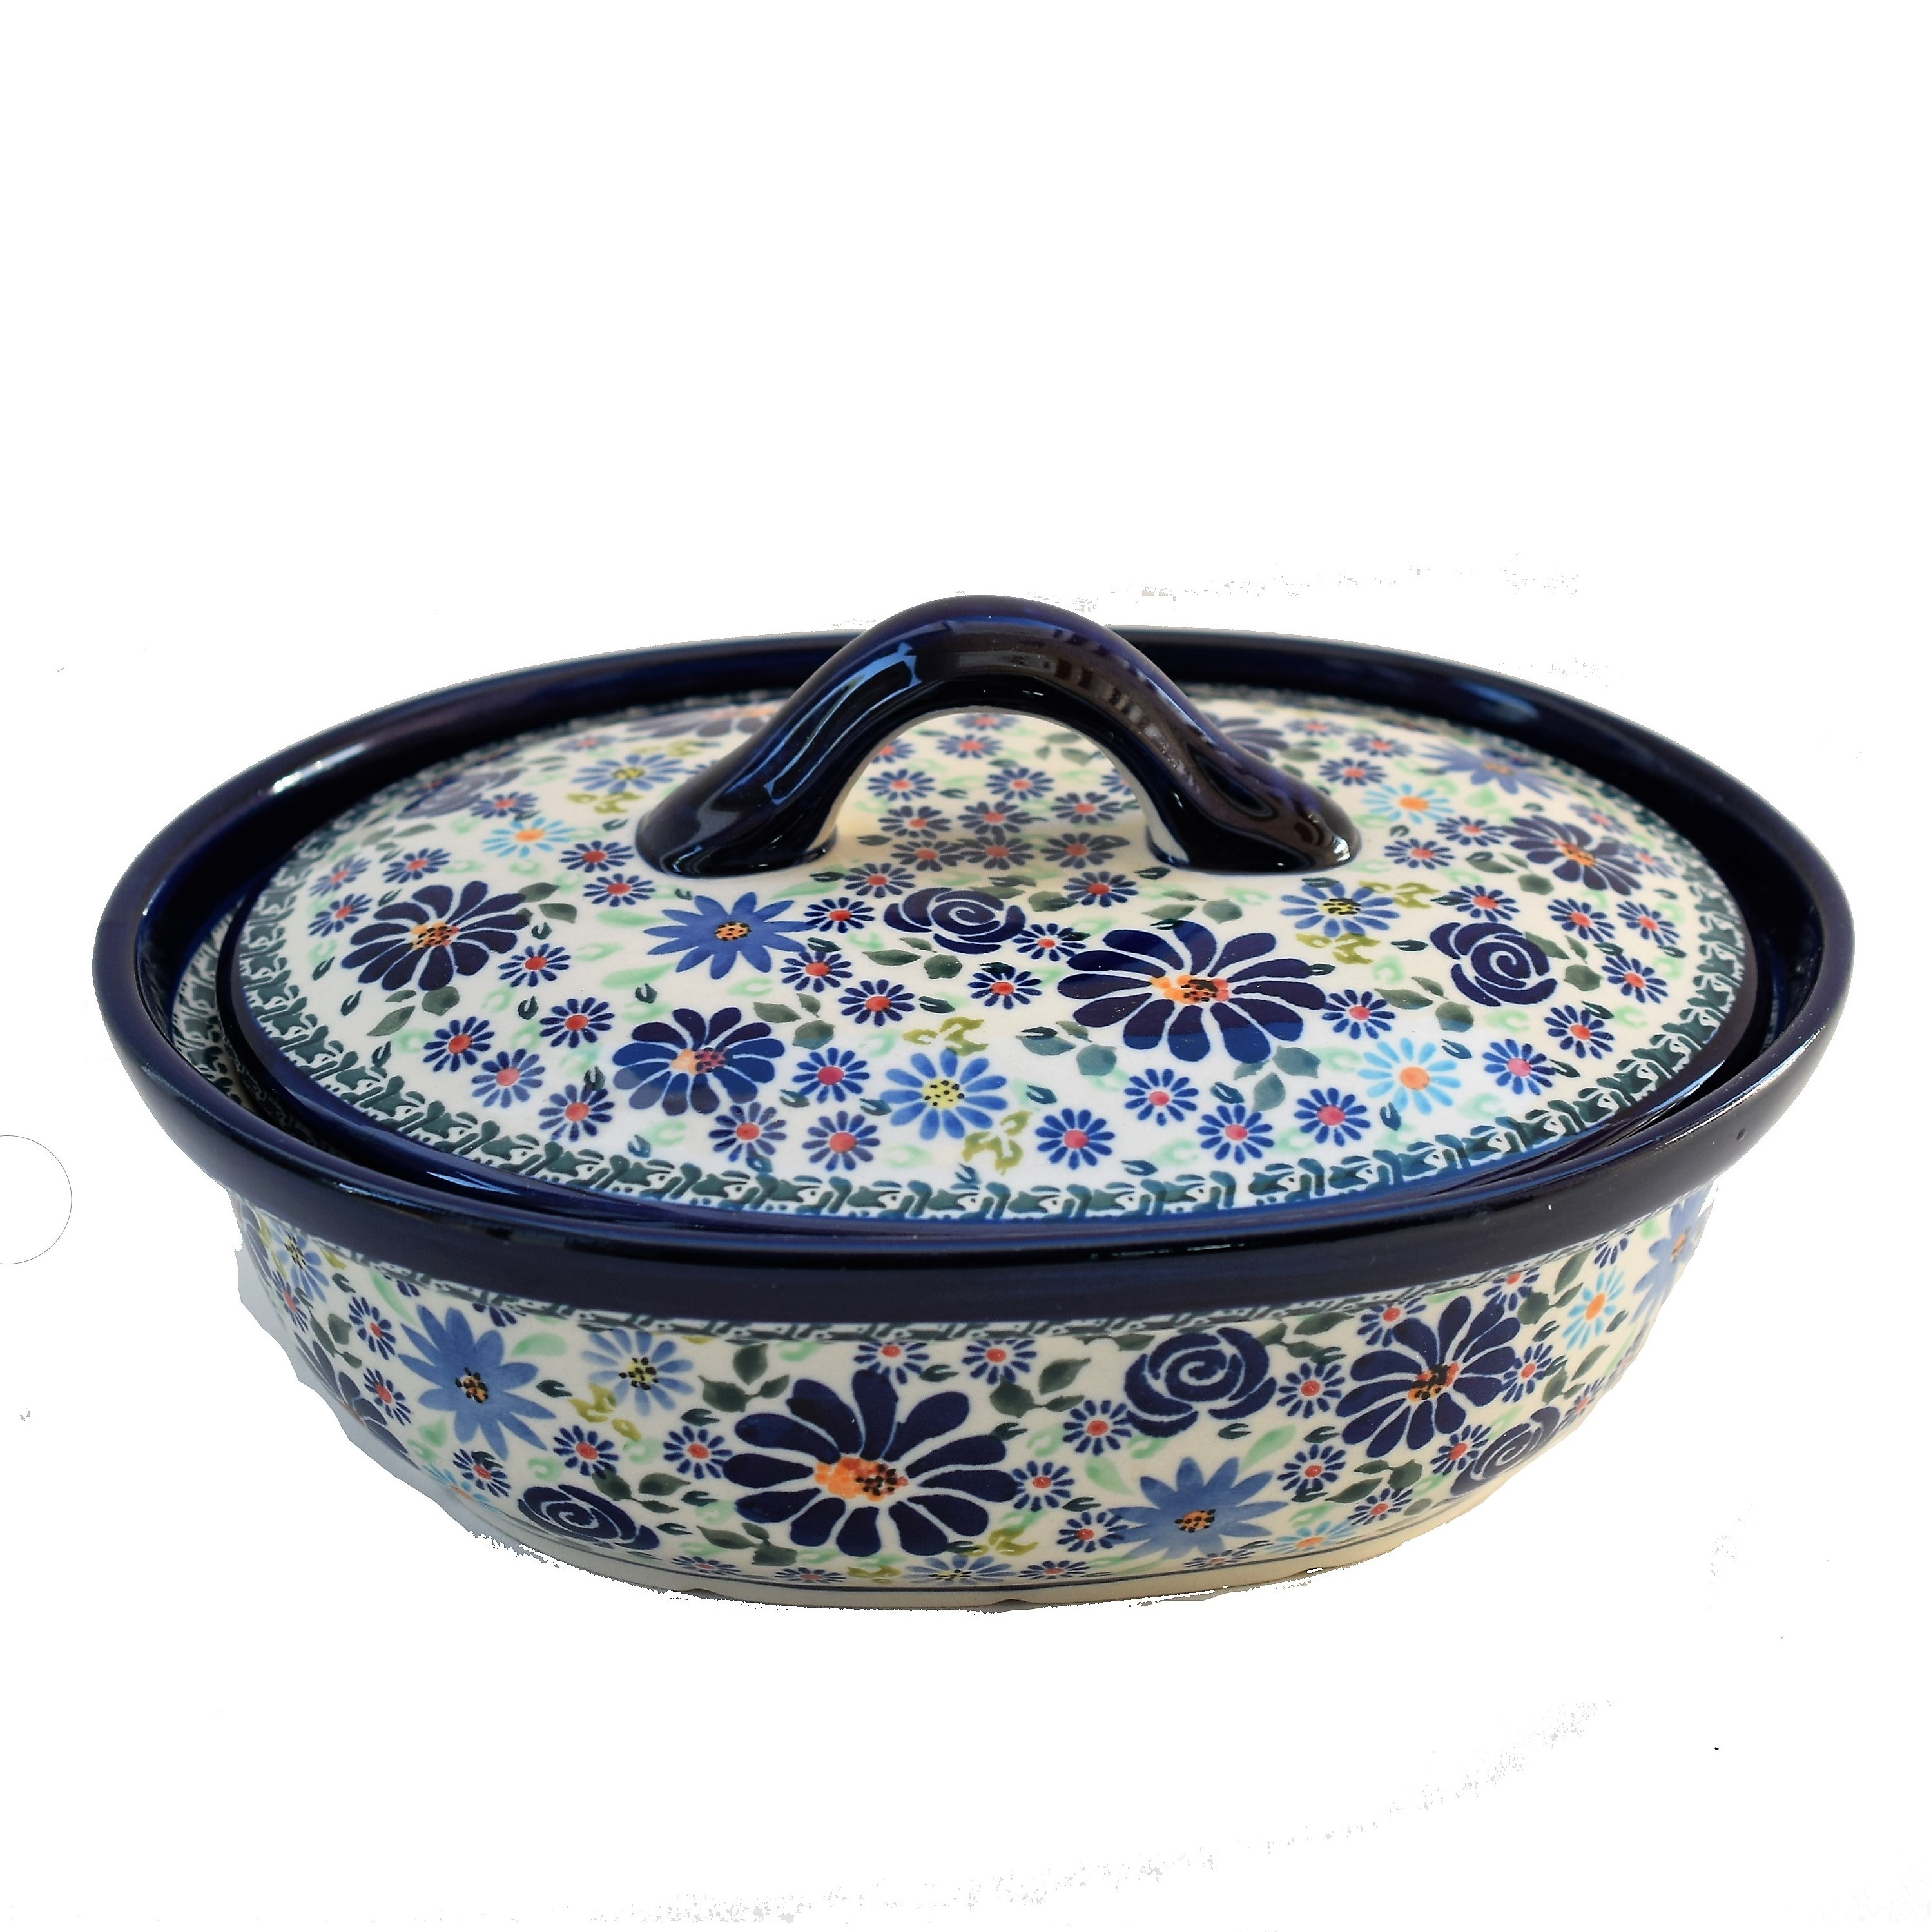 Pottery Avenue 1.5L Covered Casserole in 4TH OF JULY